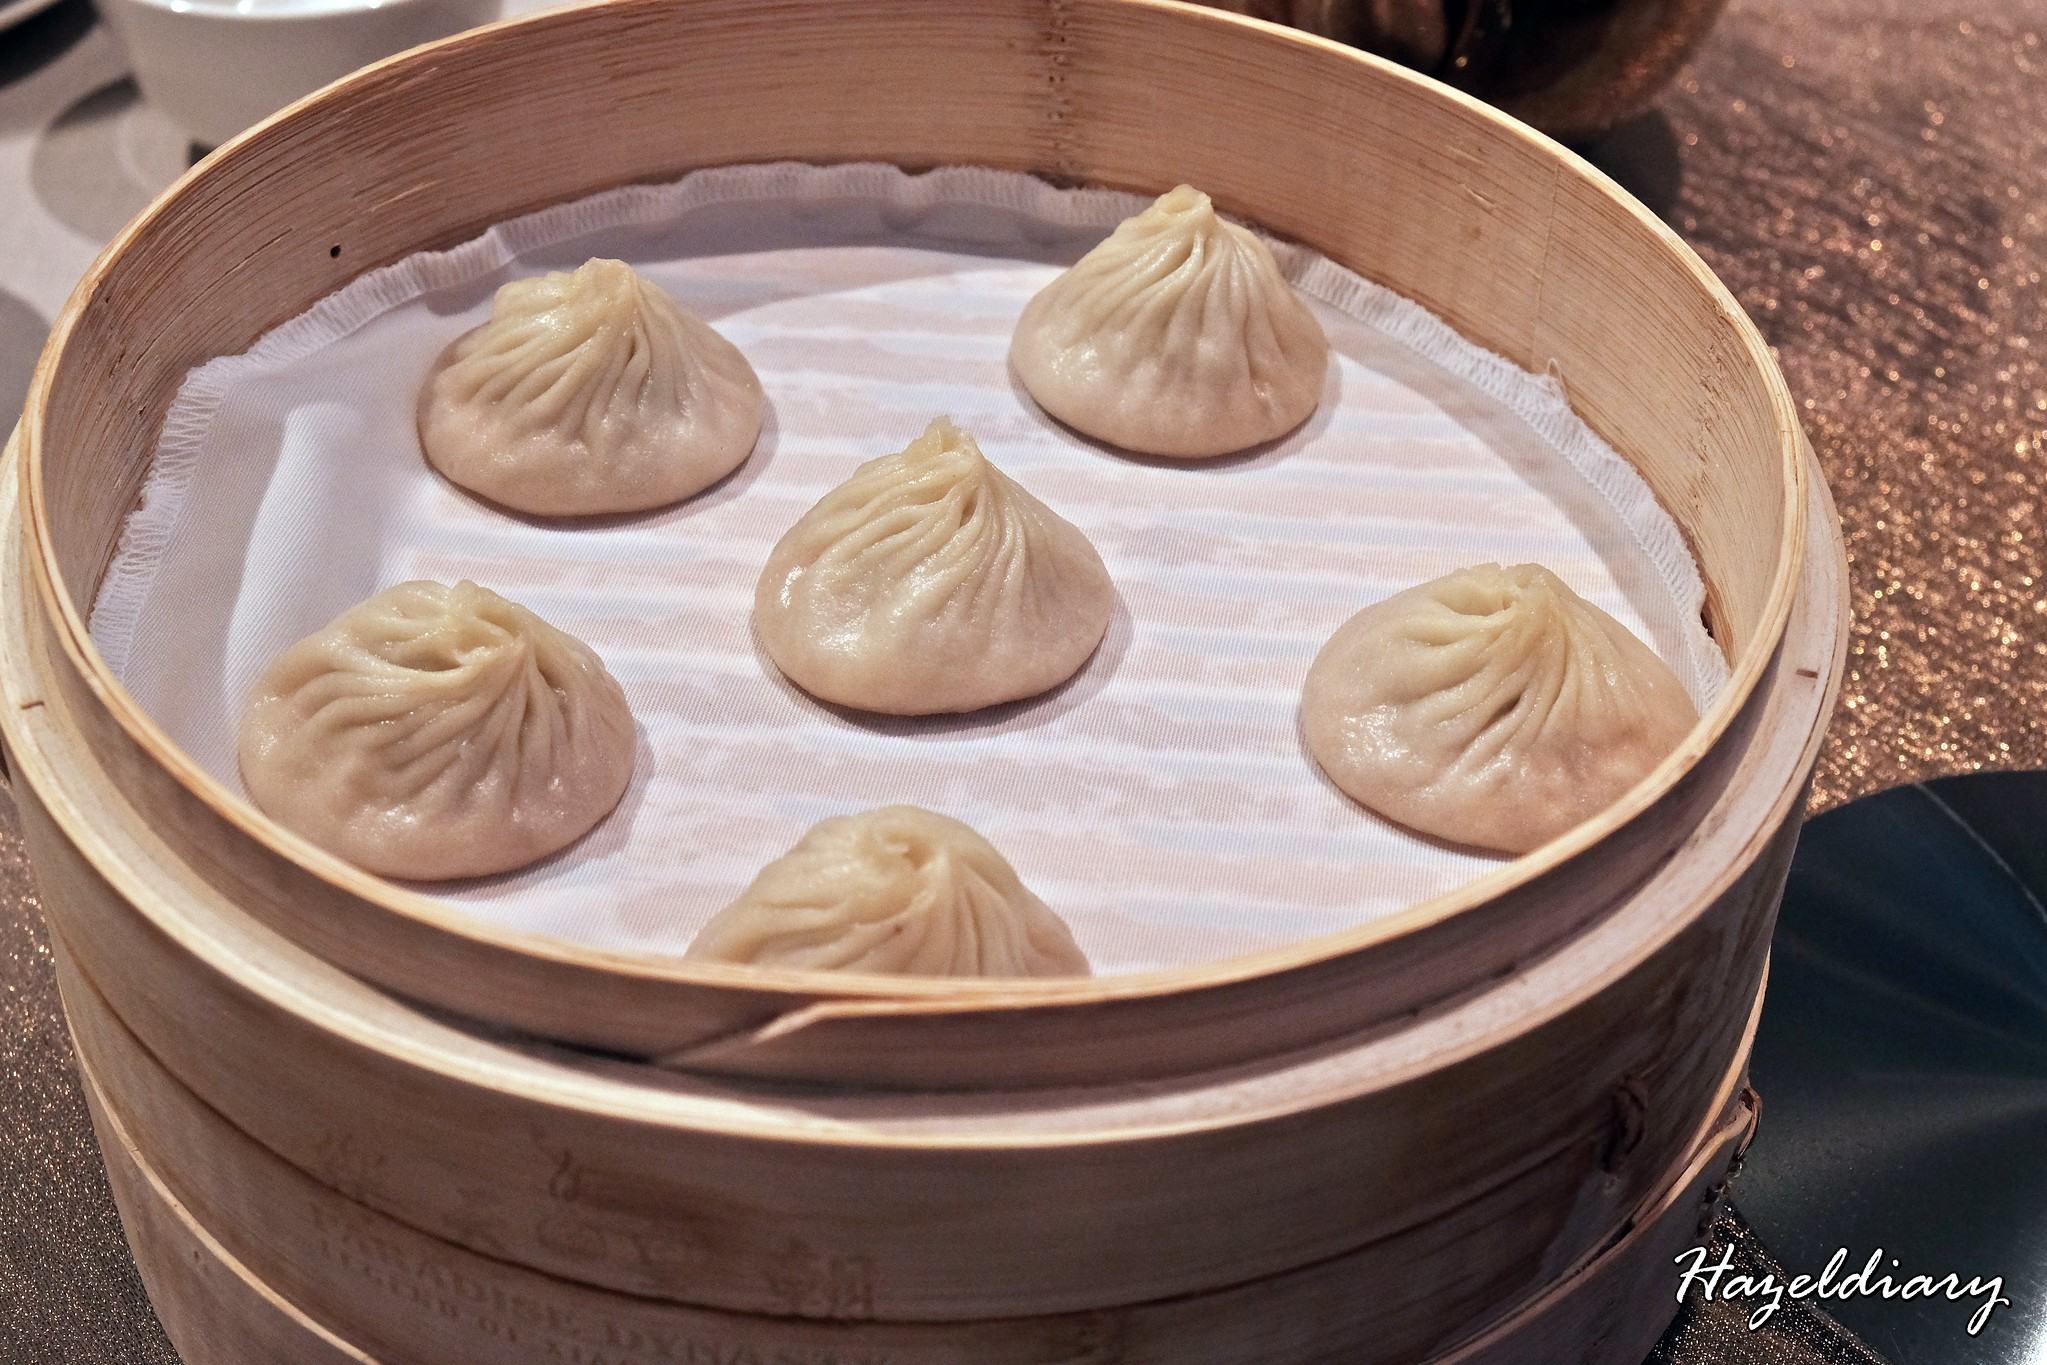 [SG EATS] FREE Brown Sugar Xiao Long Bao From Paradise Dynasty Suntec City Promotion